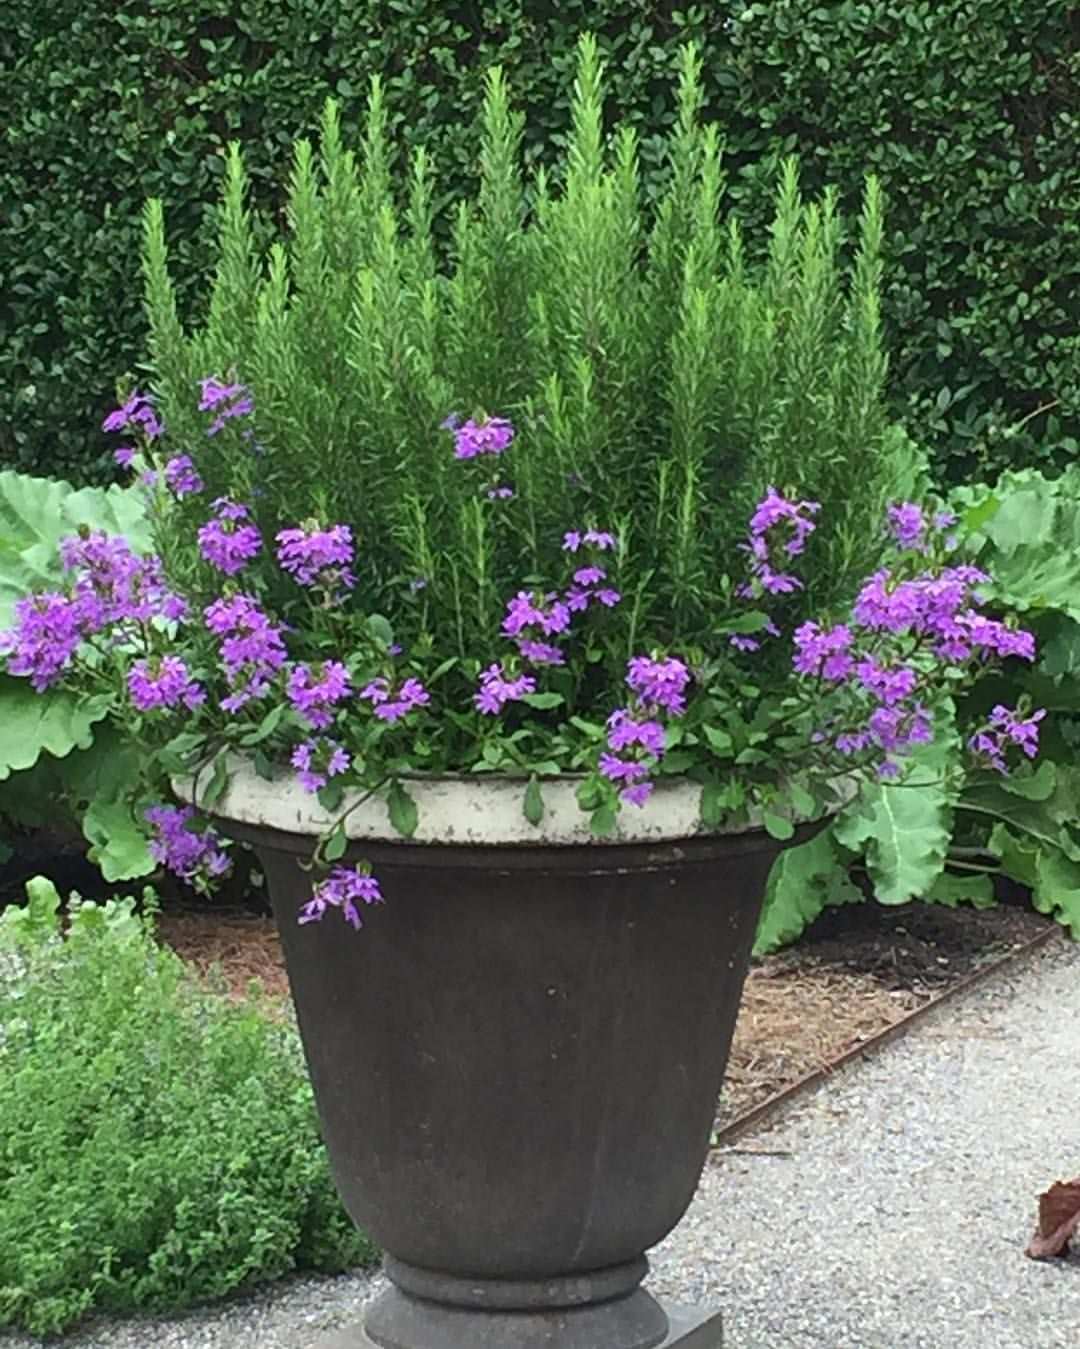 Potted Garden Plants Rosemary and lemon verbena in the barefoot contessas garden landscaping ideas workwithnaturefo